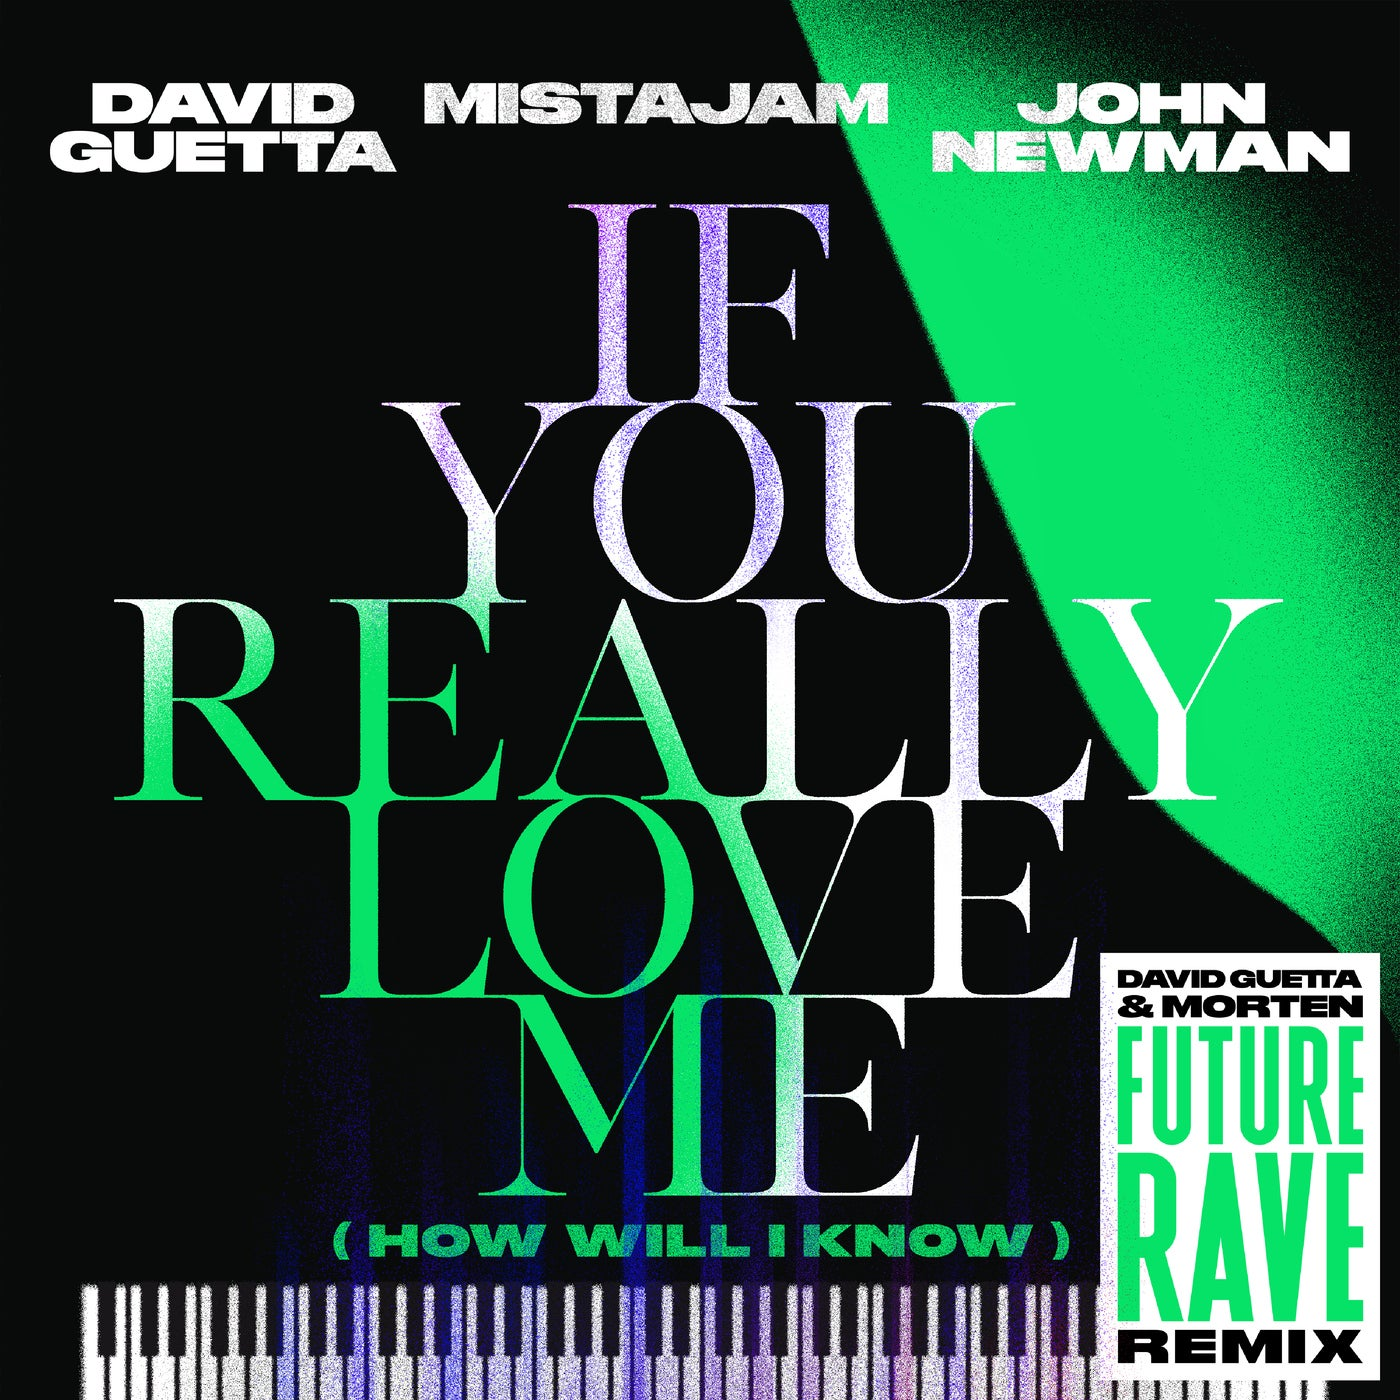 If You Really Love Me (How Will I Know) (David Guetta & MORTEN Future Rave Remix Extended)